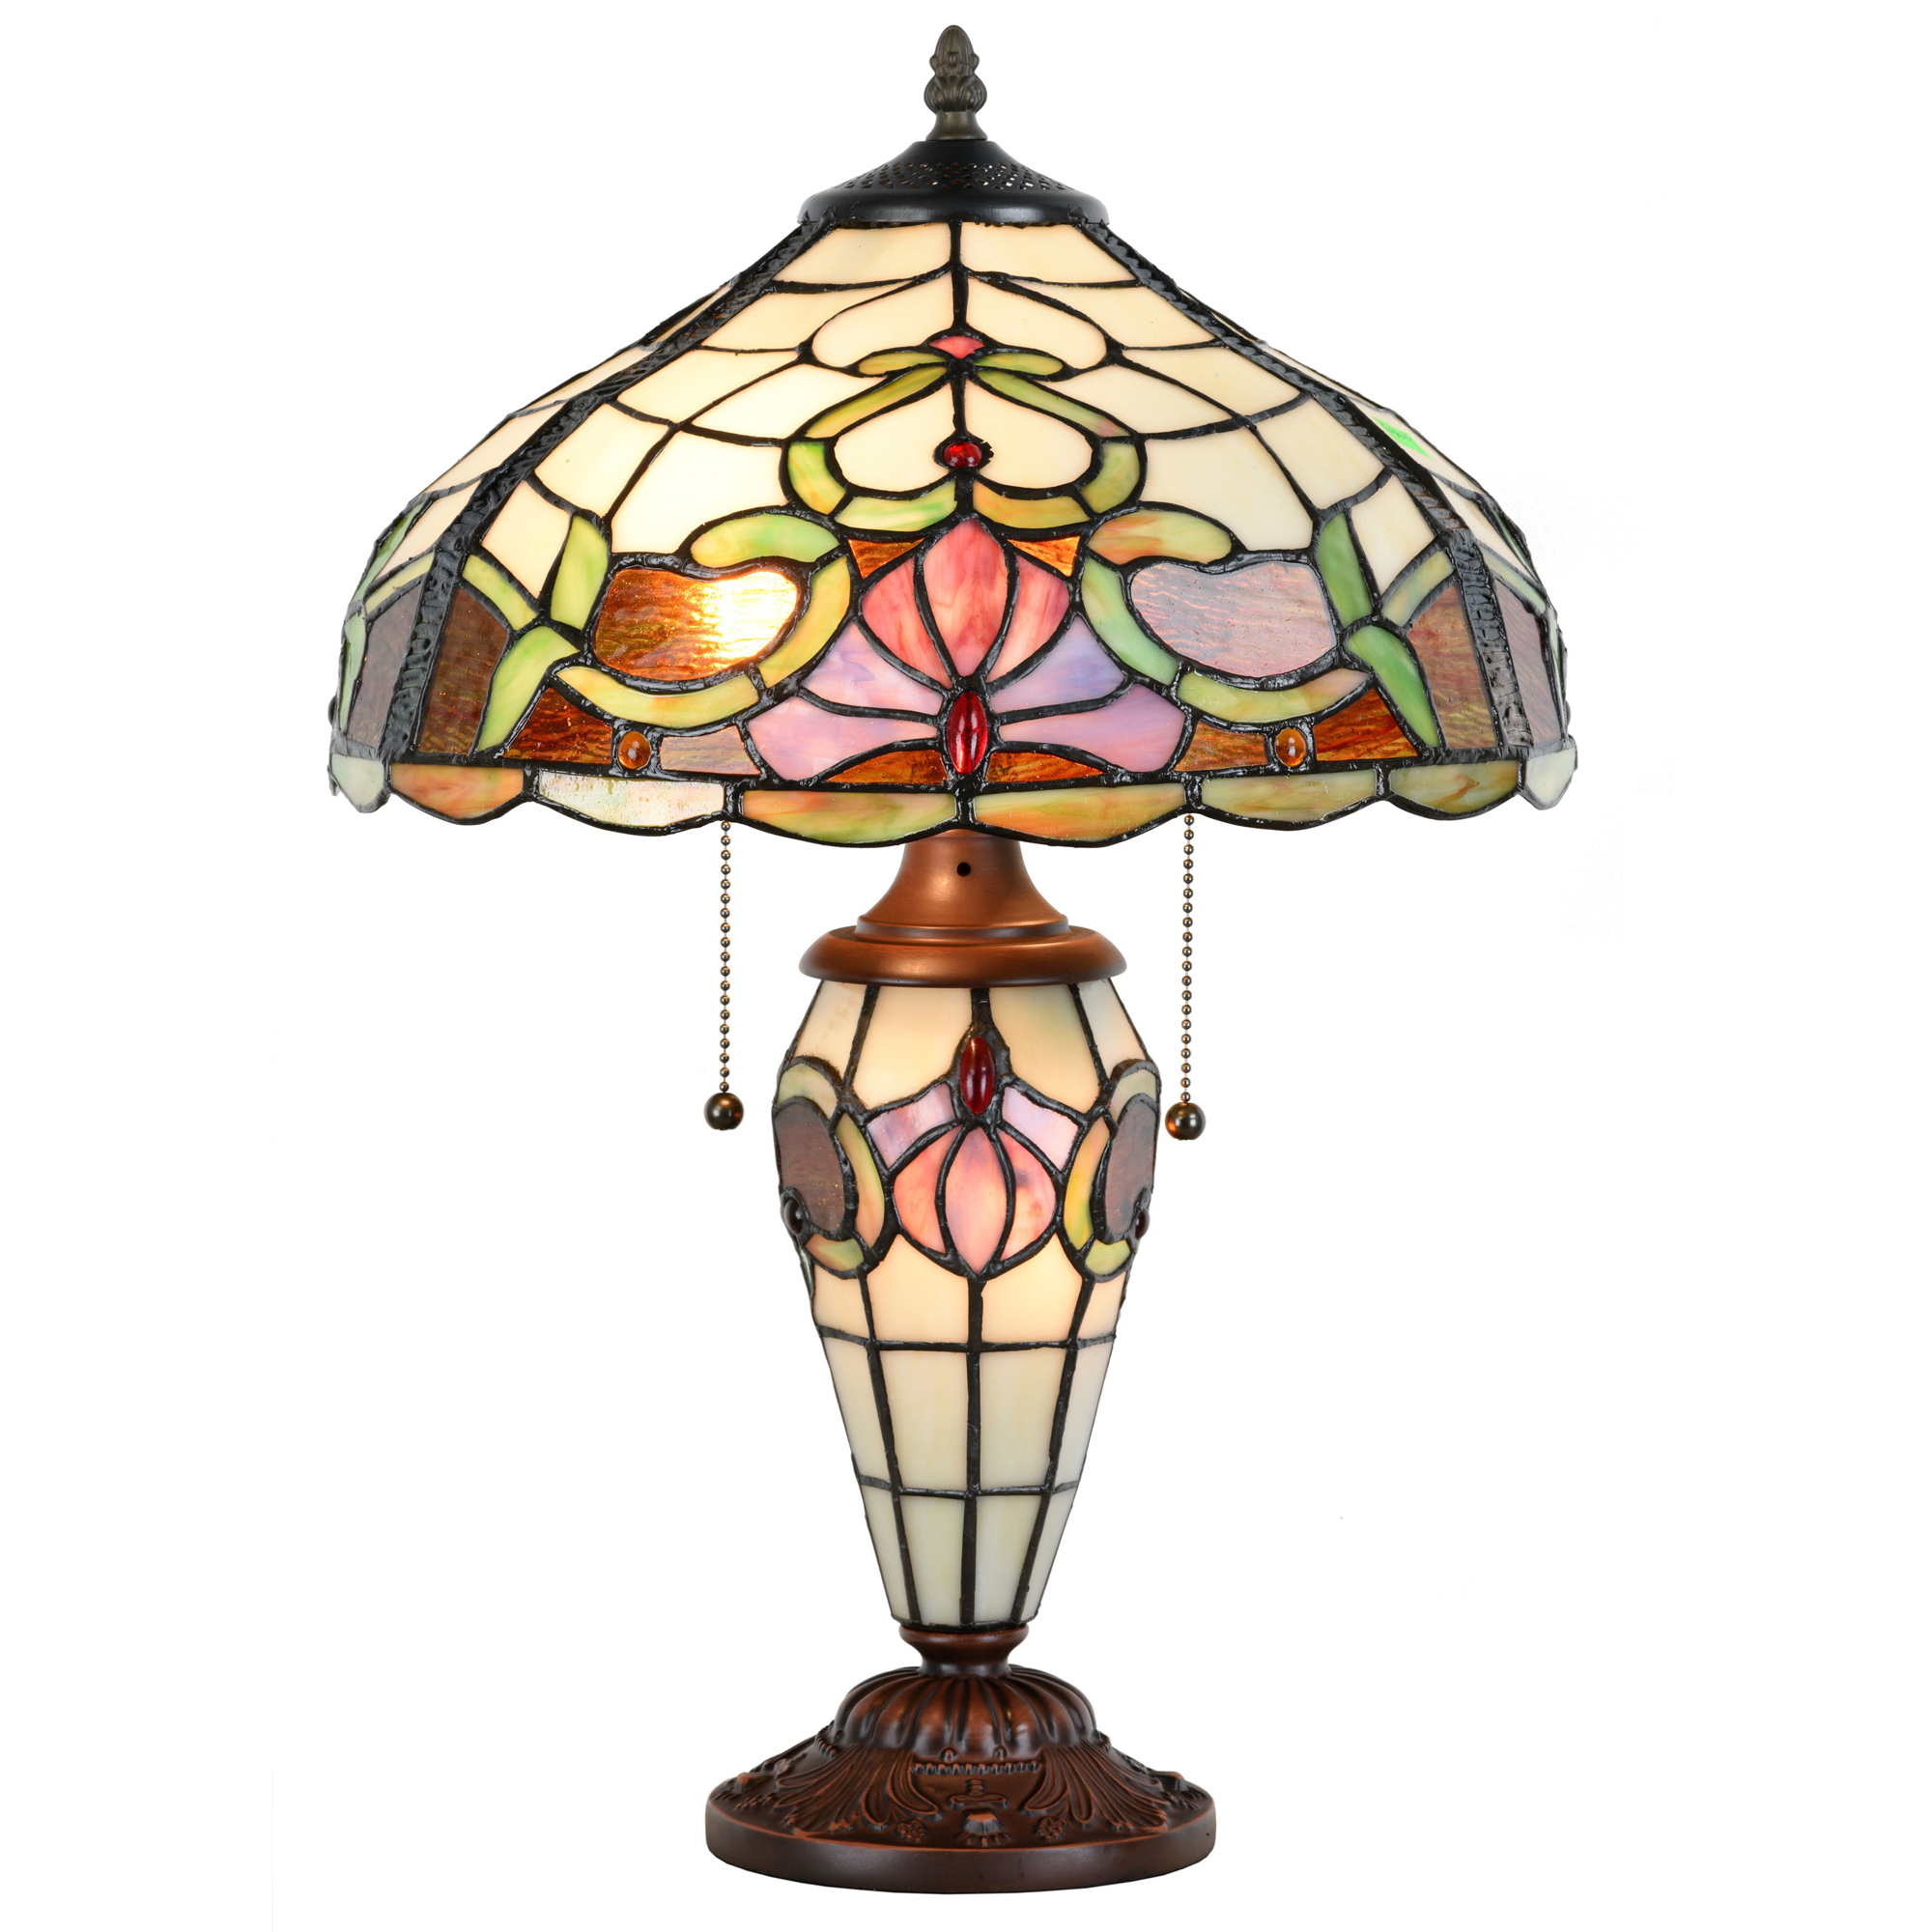 "Cloud Mountain Tiffany Style 14.25"" Lampshade Table Lamp Victorian Double Lit Desk Lamp Stained Glass Home Decor Lighting"